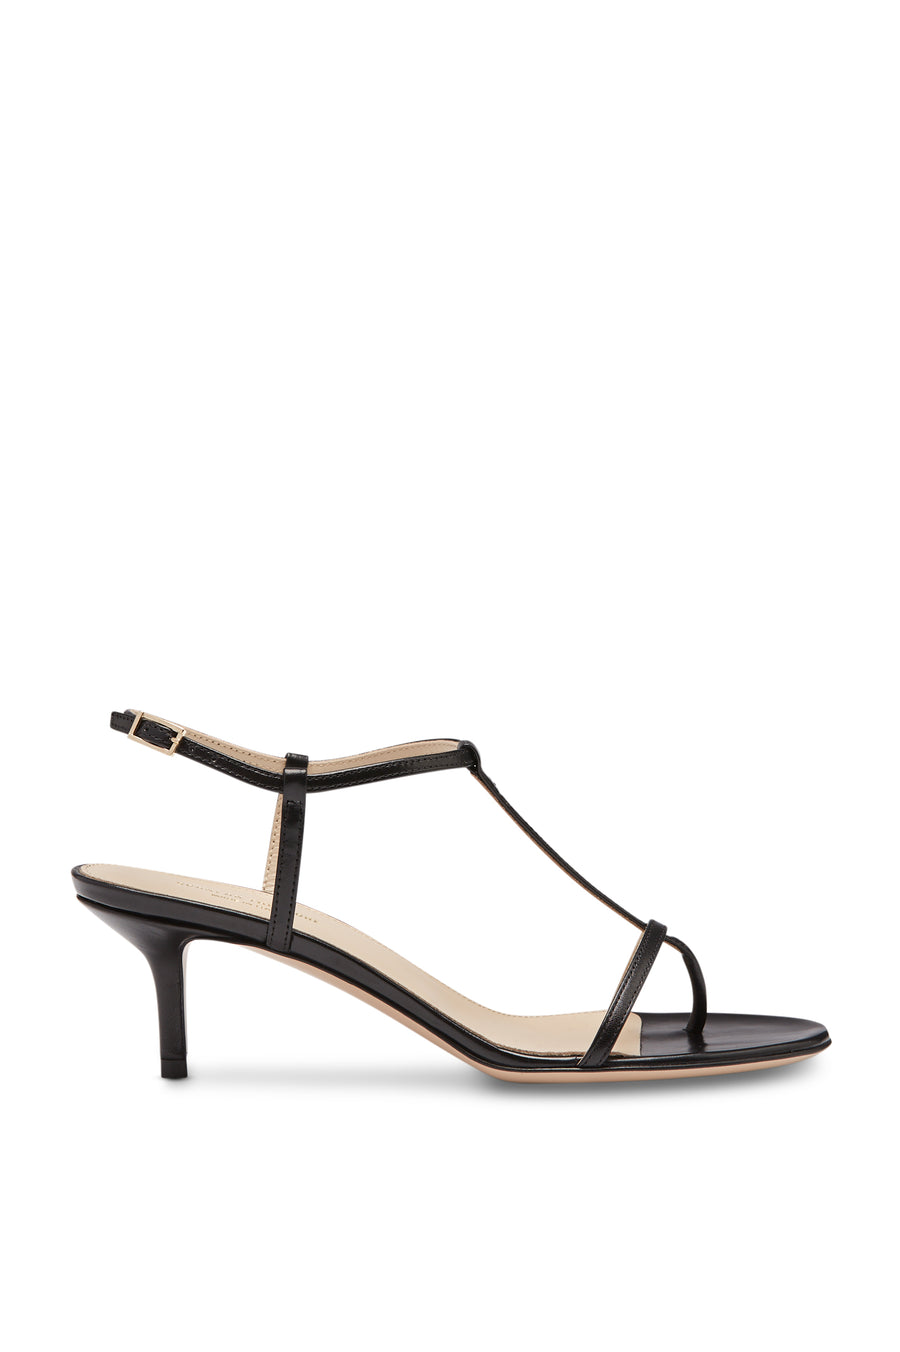 T-BAR SANDAL 5.5 NERO